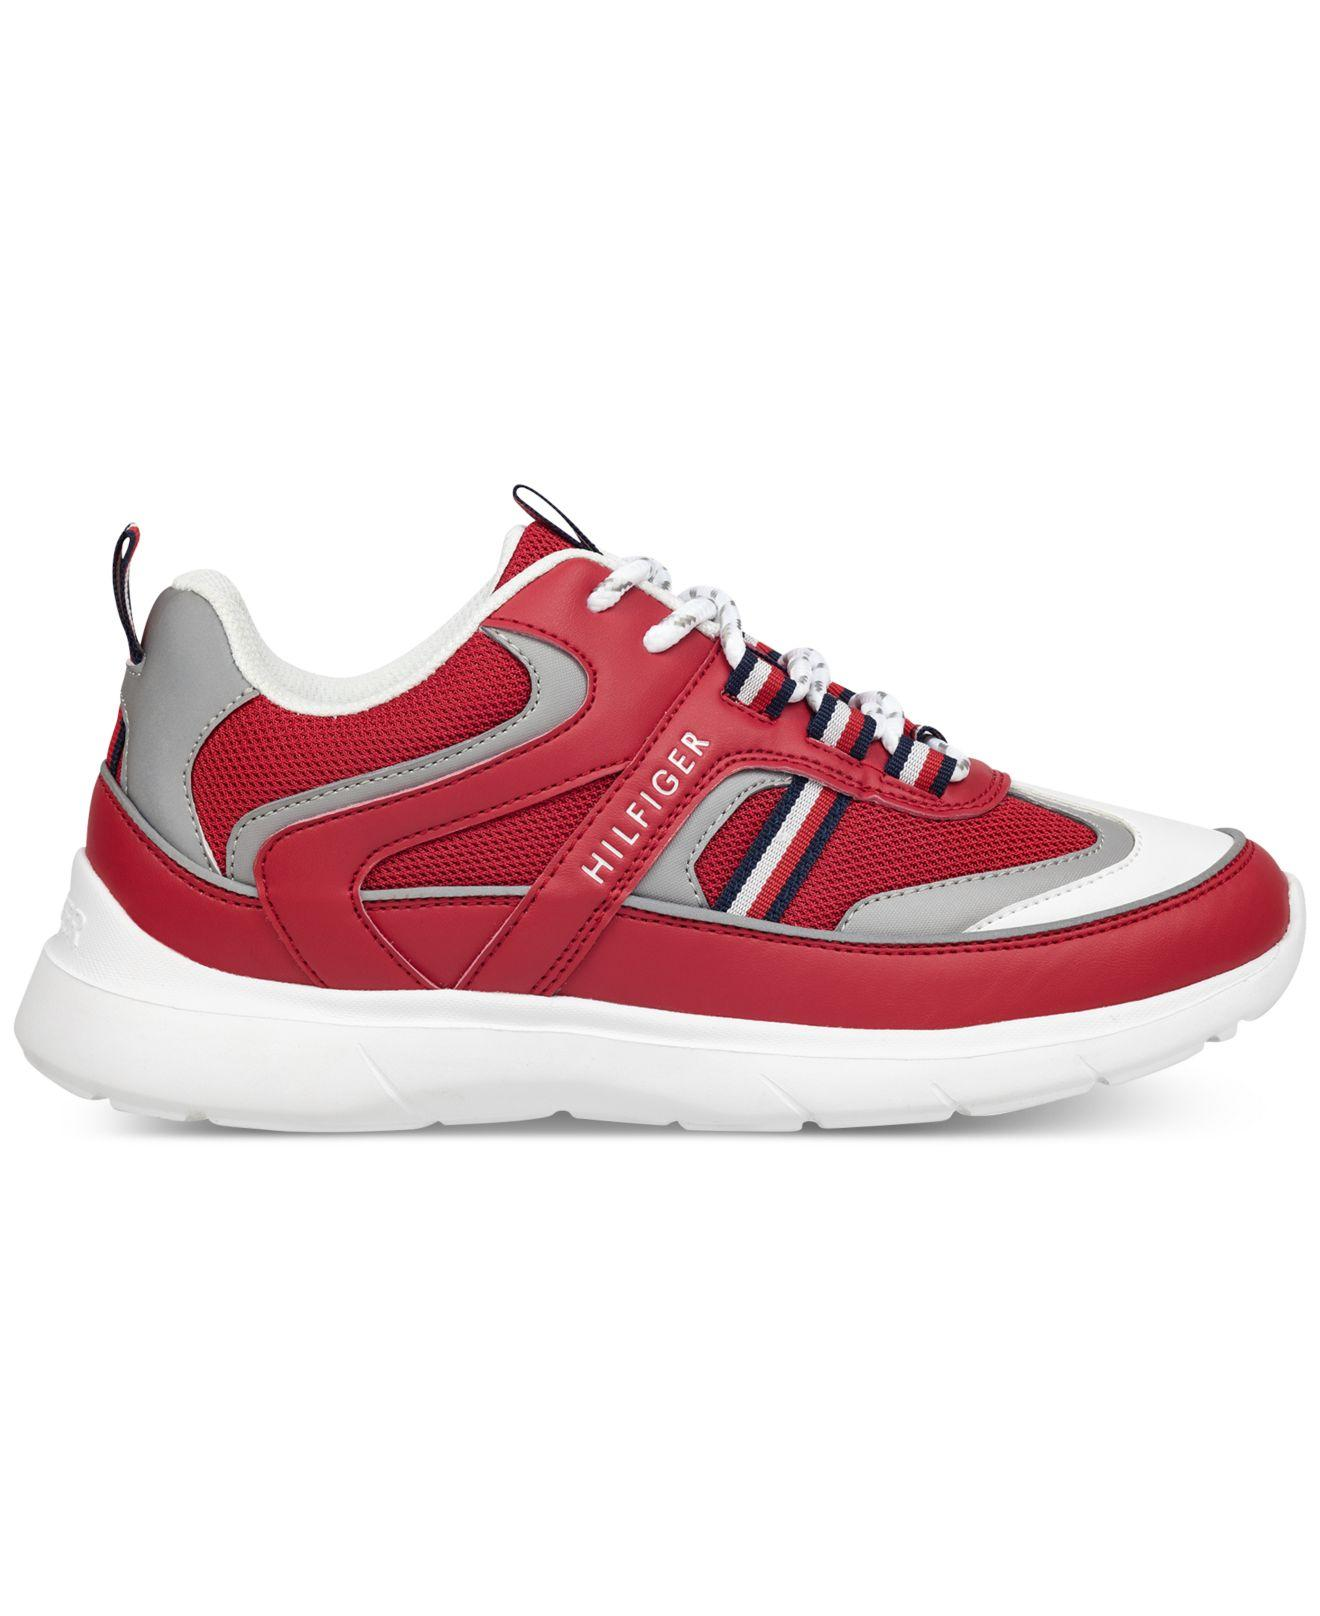 6bcb7e11cb59 Lyst - Tommy Hilfiger Cedro Sneakers in Red